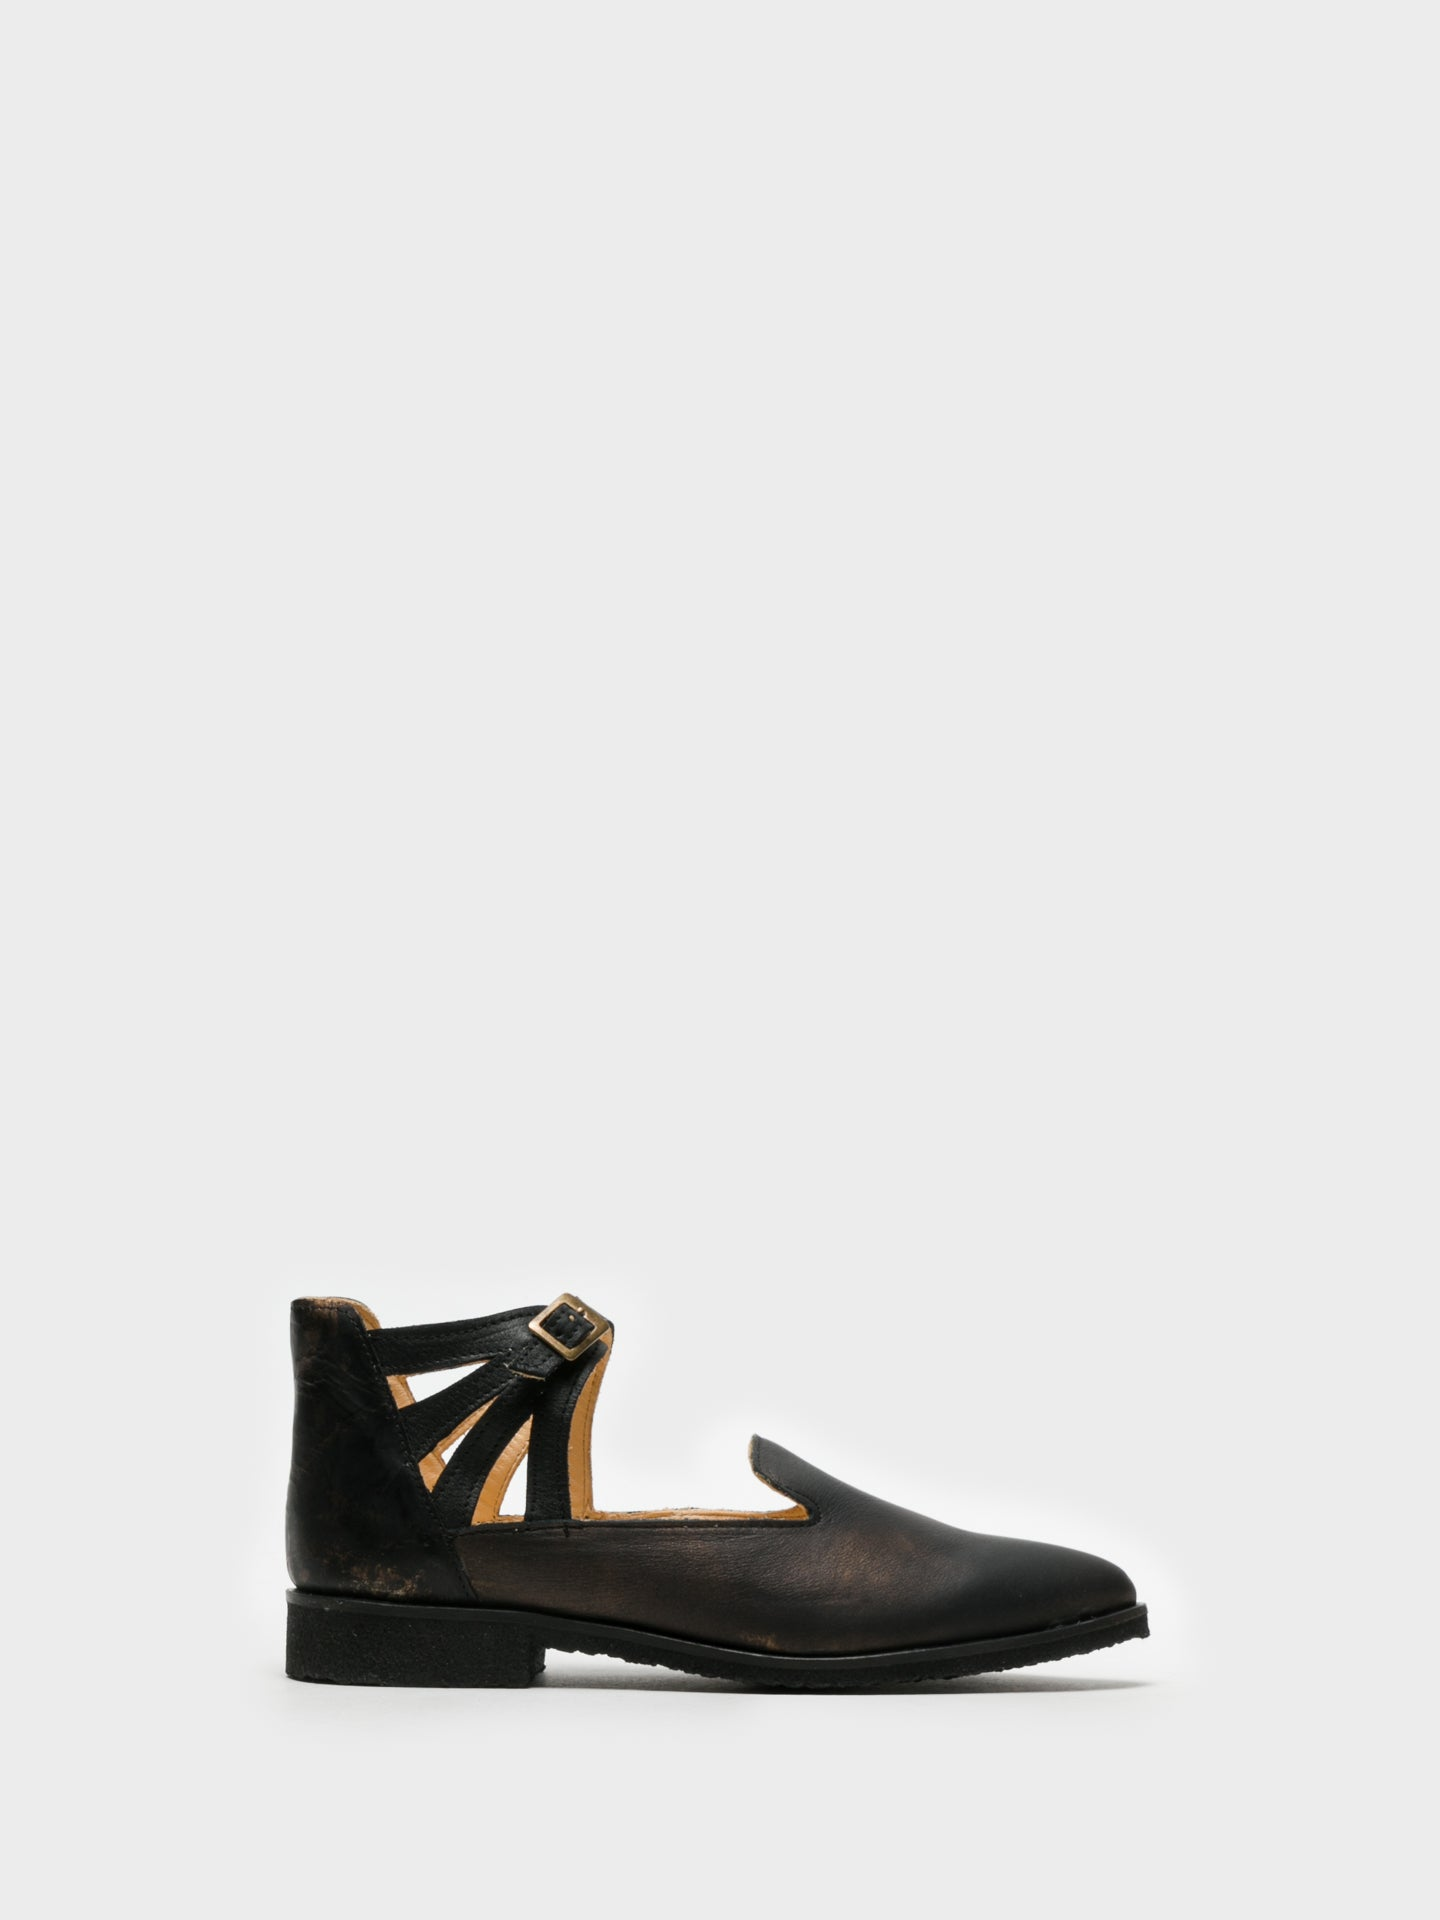 Marita Moreno Black Buckle Shoes